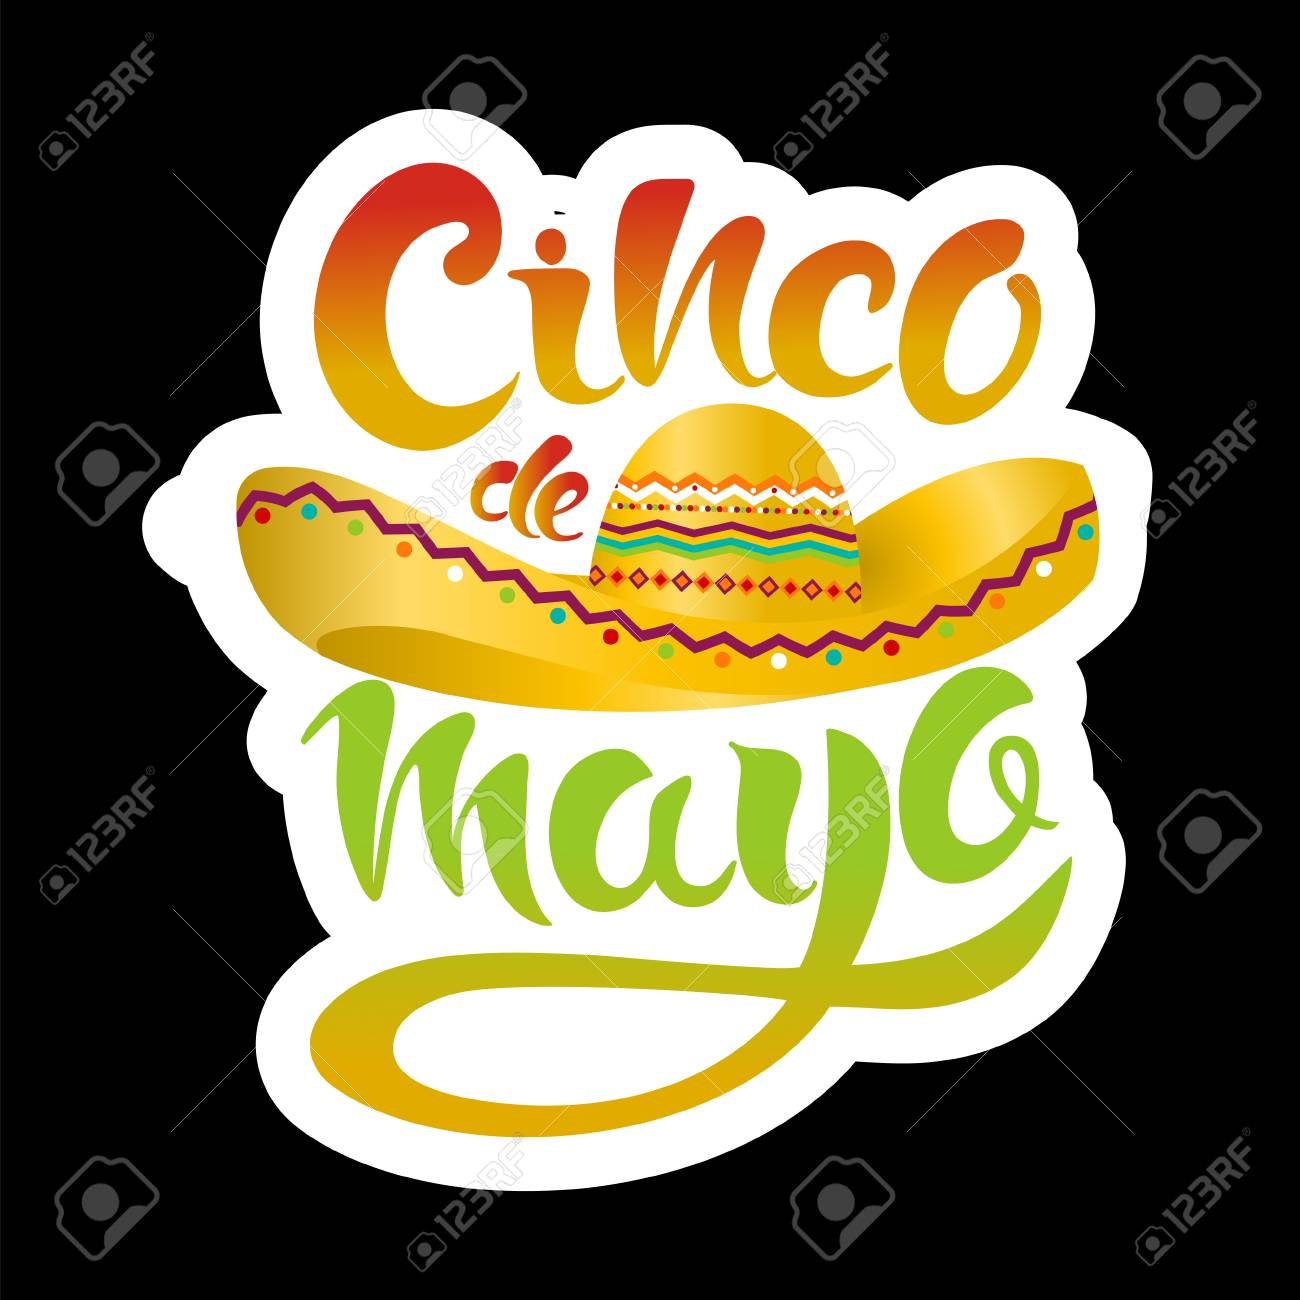 cinco de mayo poster template with sombrero on black background